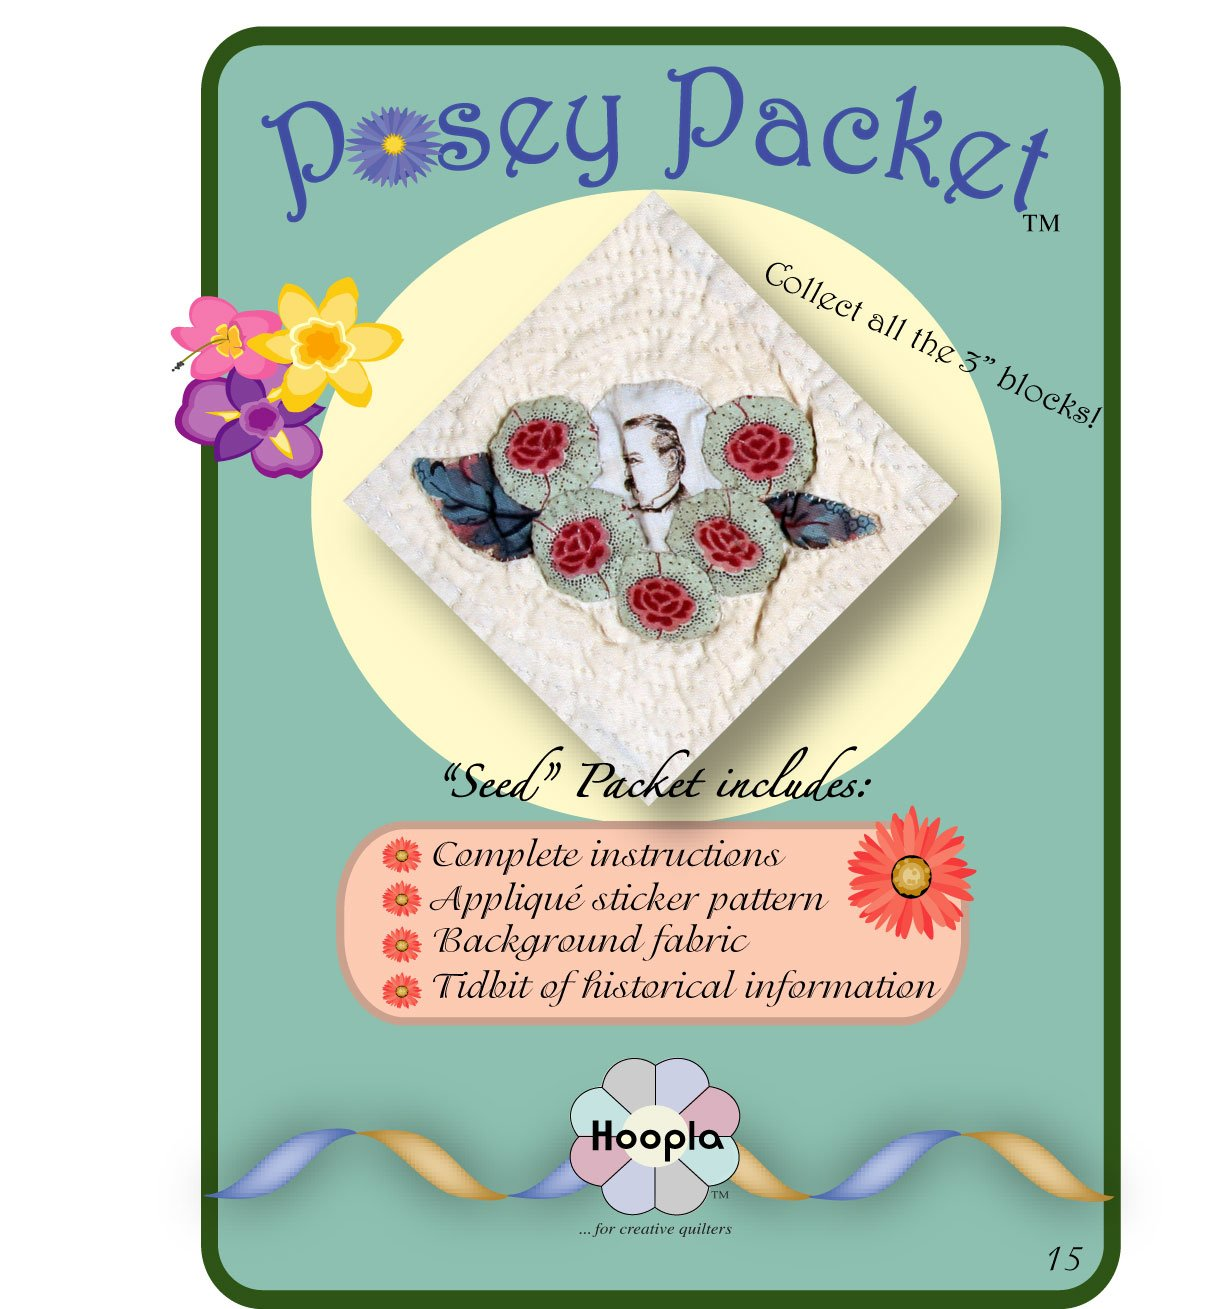 Posey Packet 15